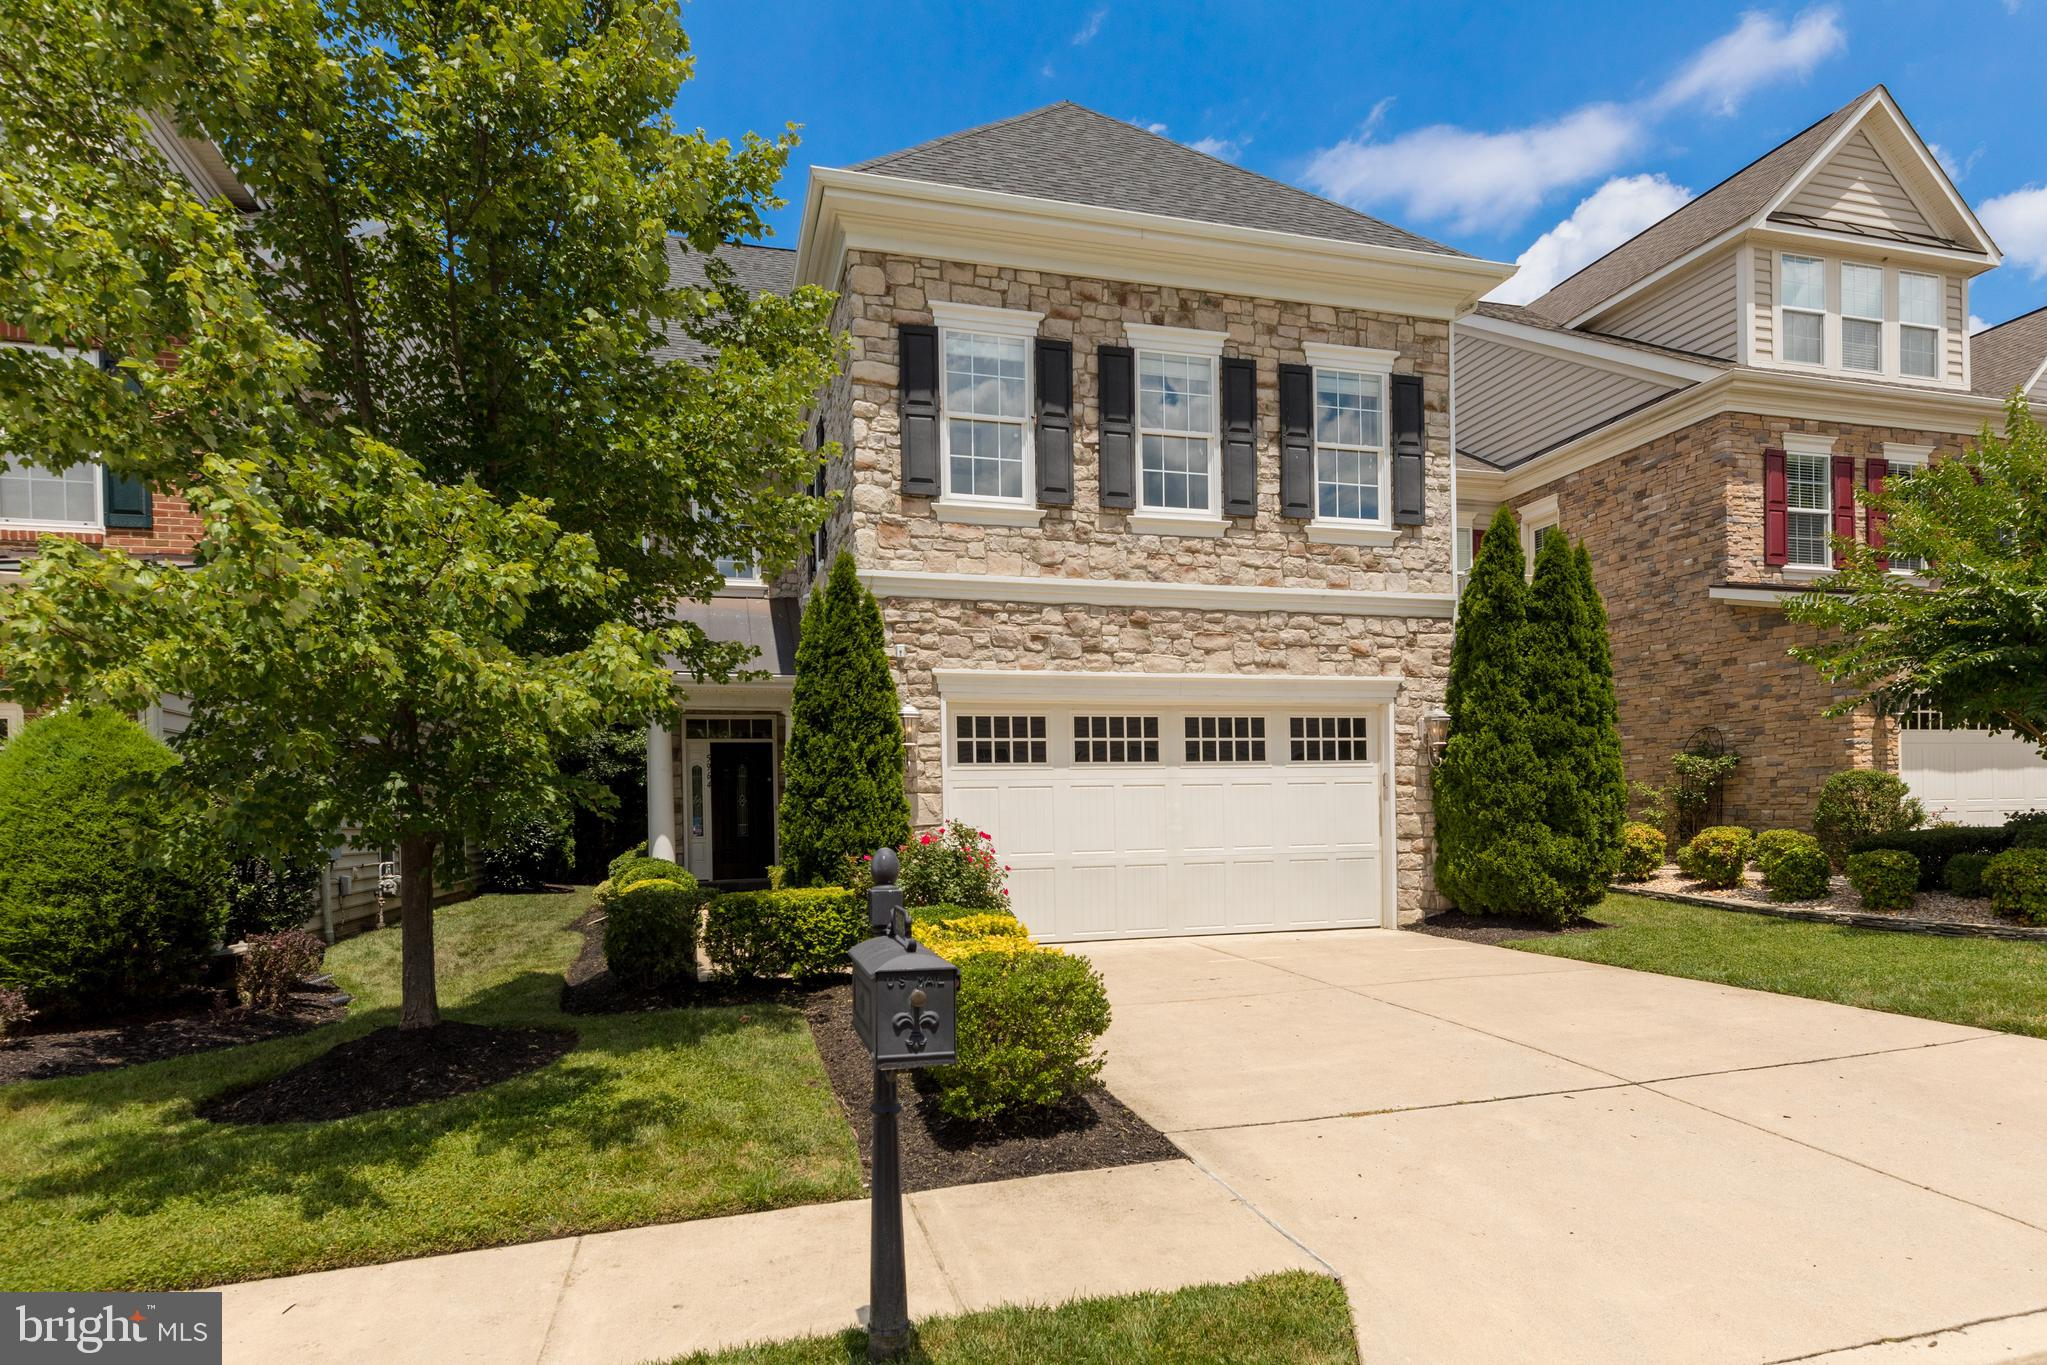 5964 MANORVIEW WAY, ALEXANDRIA, VA 22315